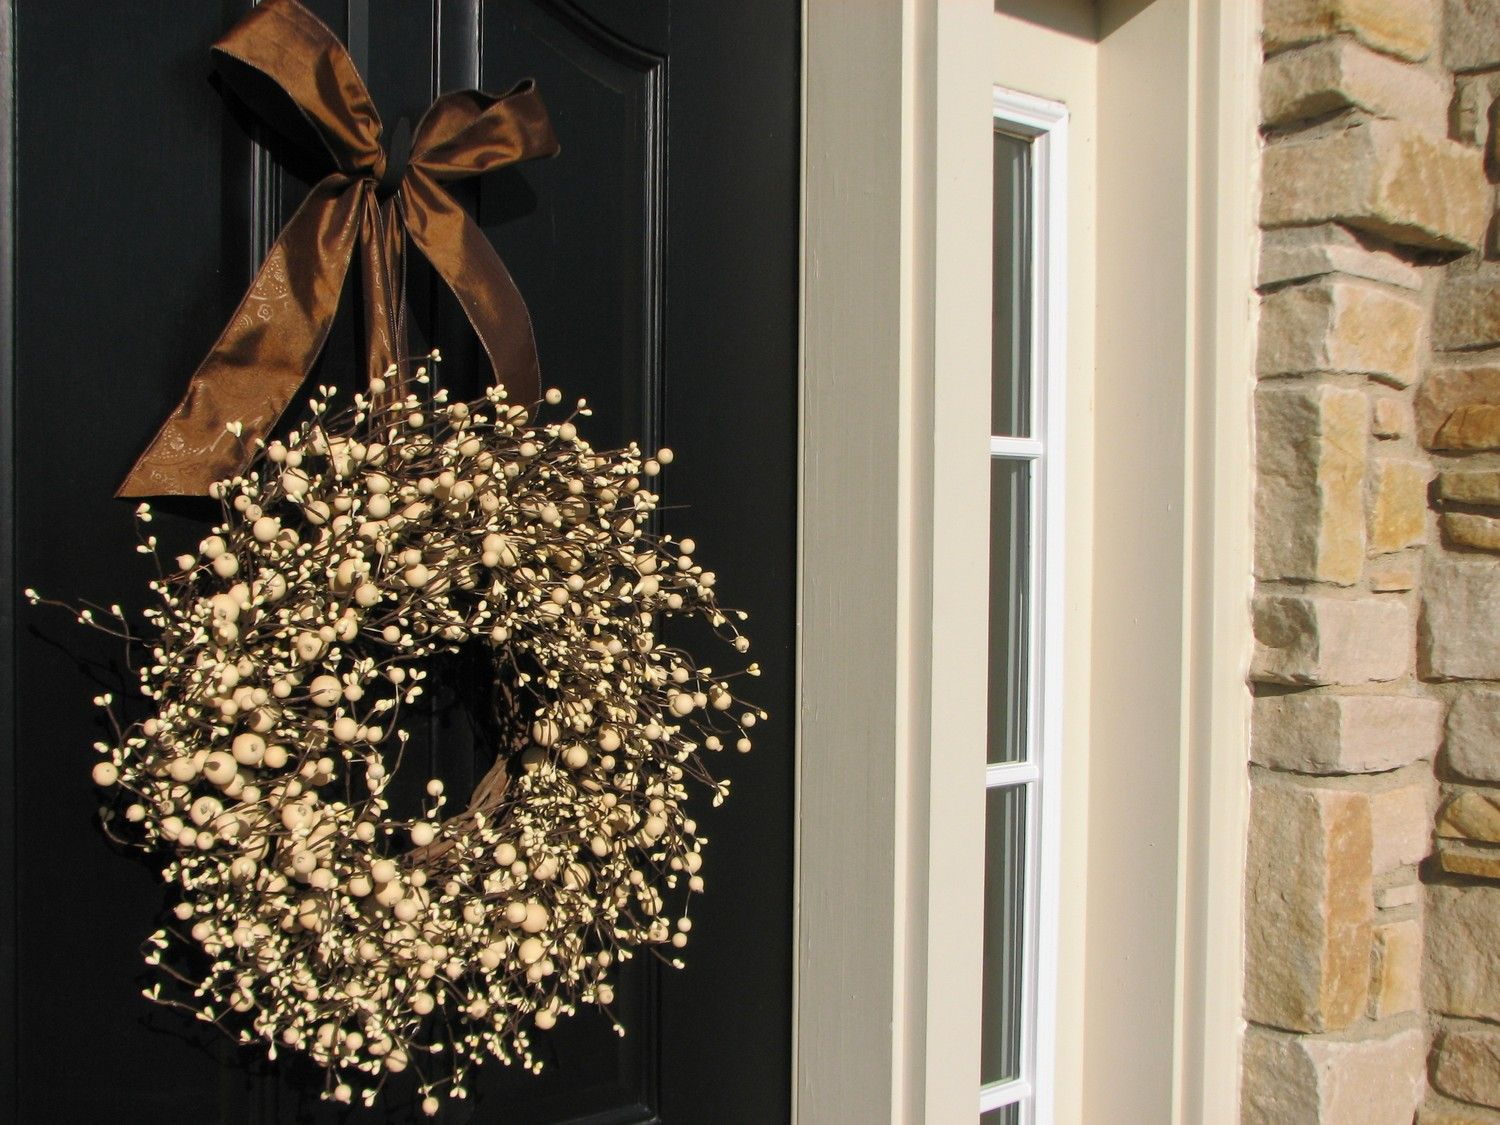 Superior Berry Wreaths Front Door Wreath Chocolate And By Twoinspireyou, $75.00